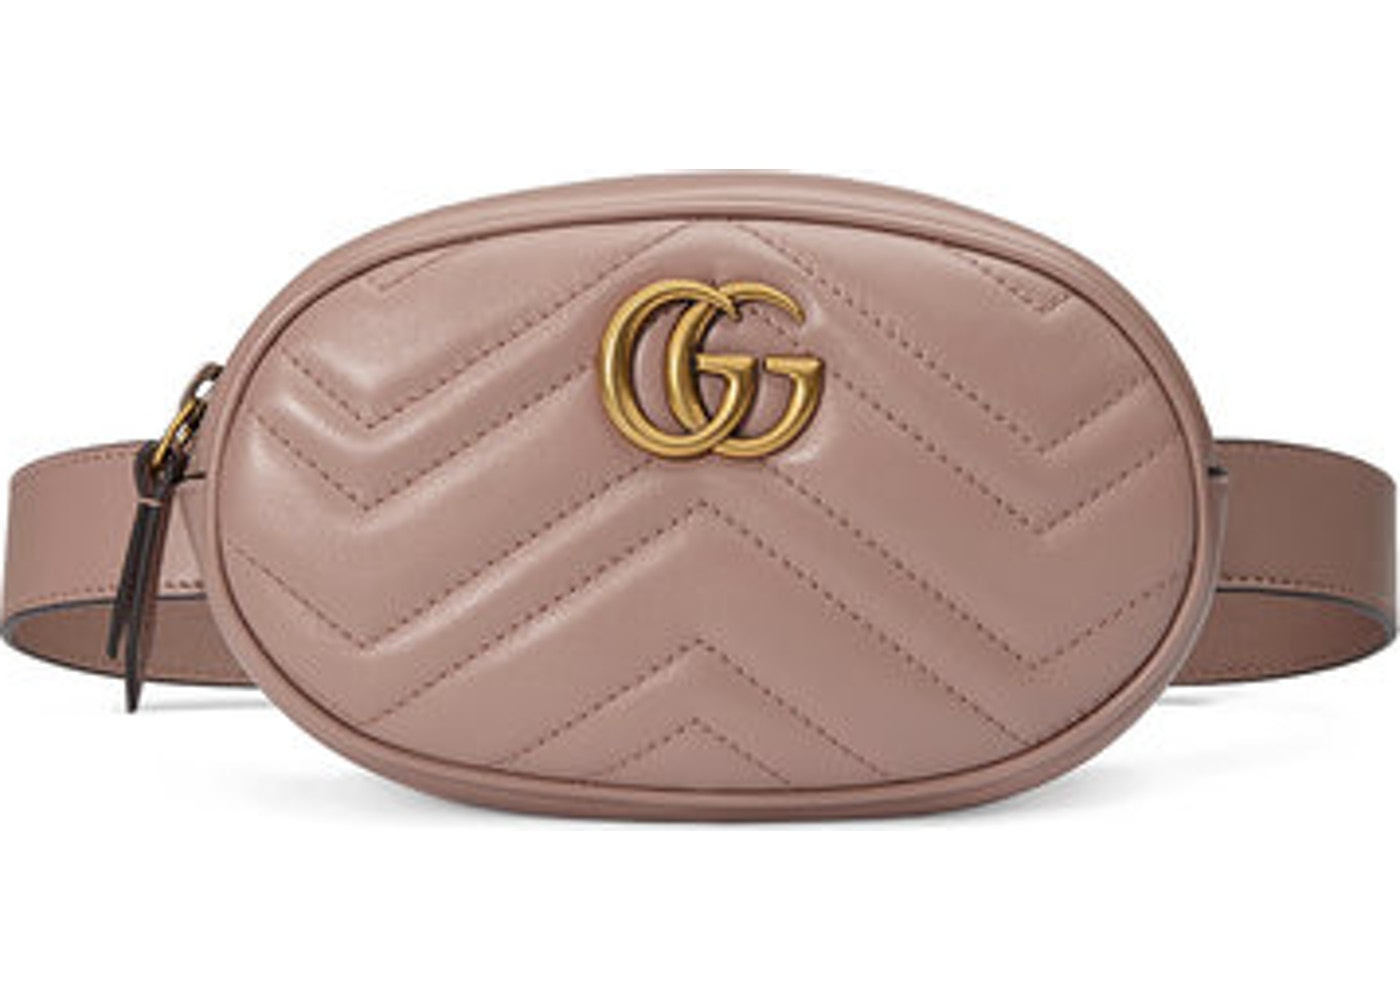 211805d552d Gucci Marmont Belt Bag Matelasse GG Dusty Pink. Matelasse GG Dusty Pink